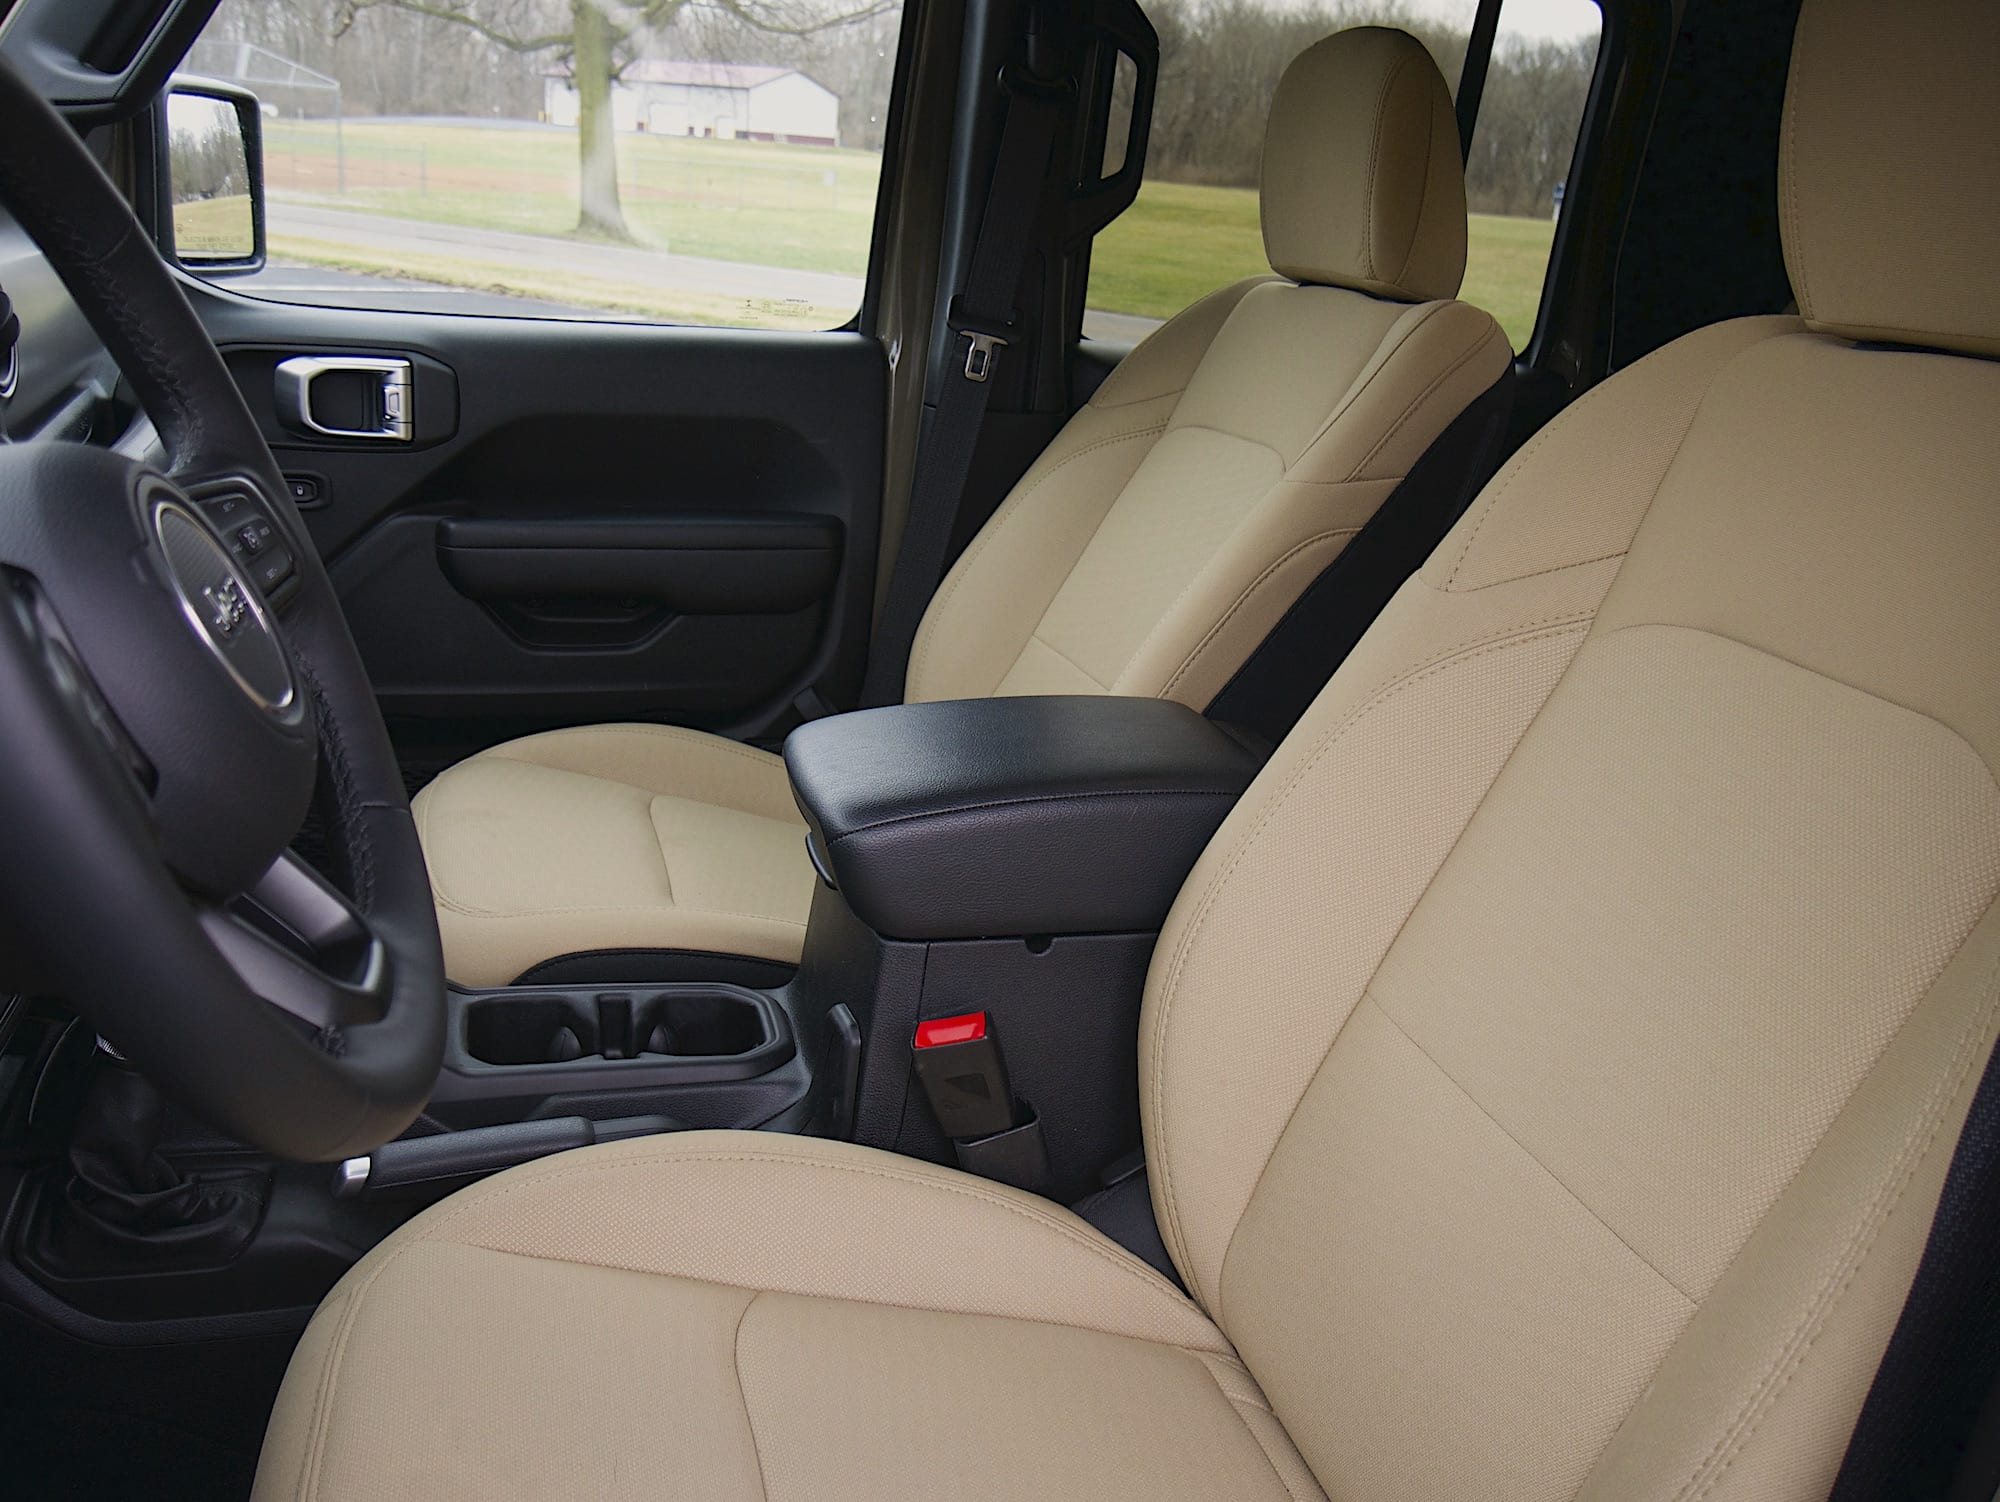 2020 Jeep Gladiator front seats